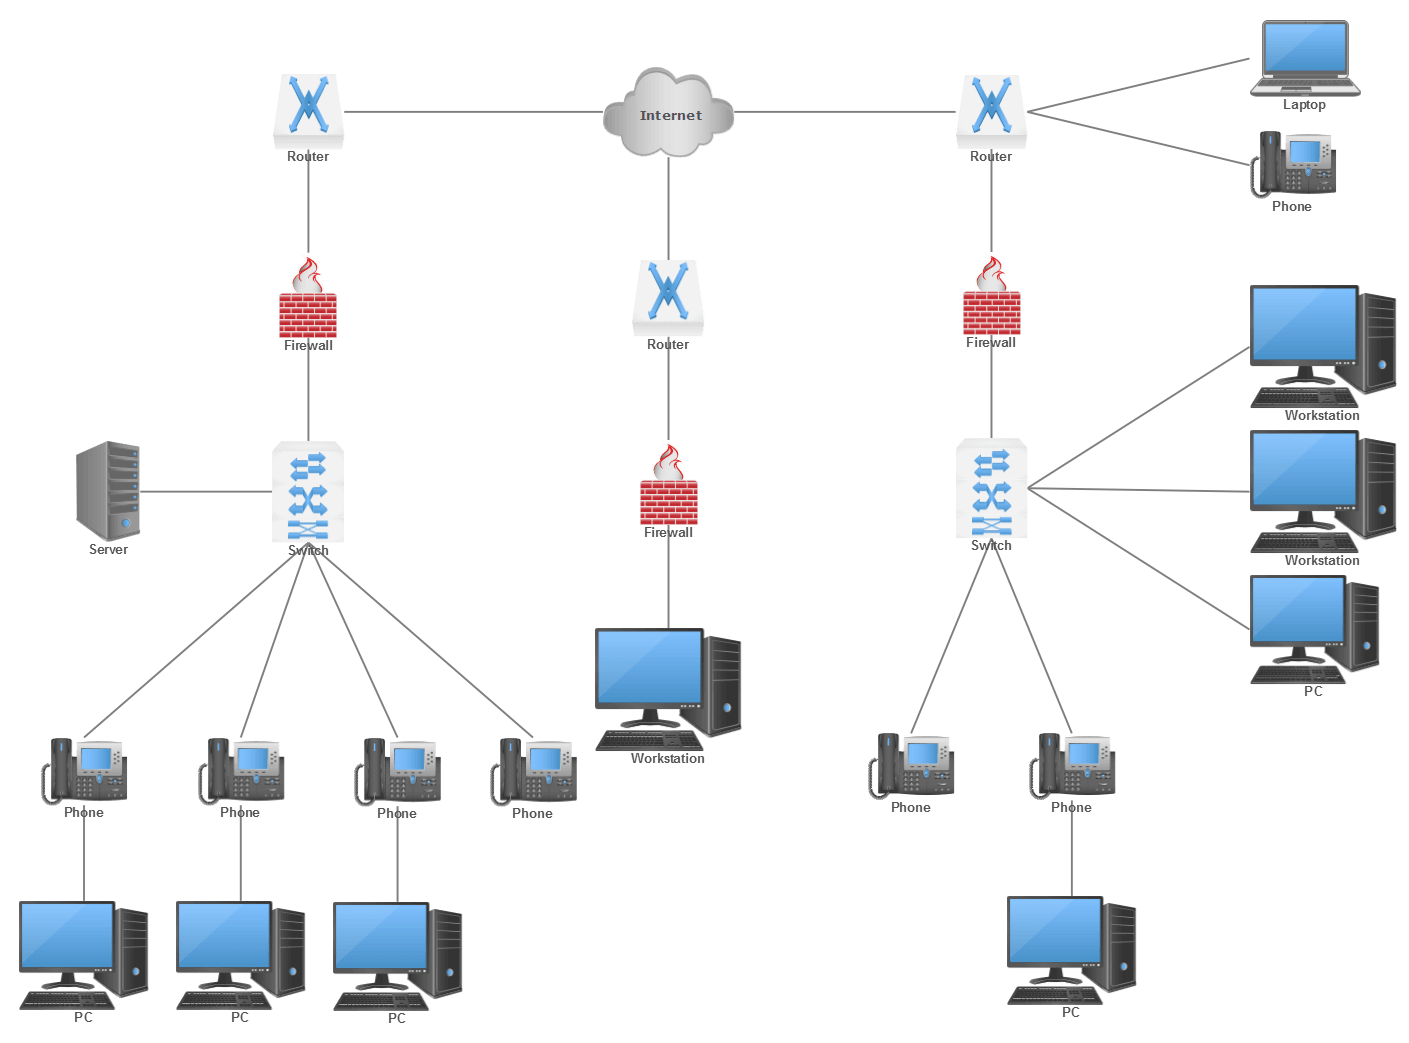 network diagram software free download or network diagram online rh smartdraw com network diagram software network diagram software free